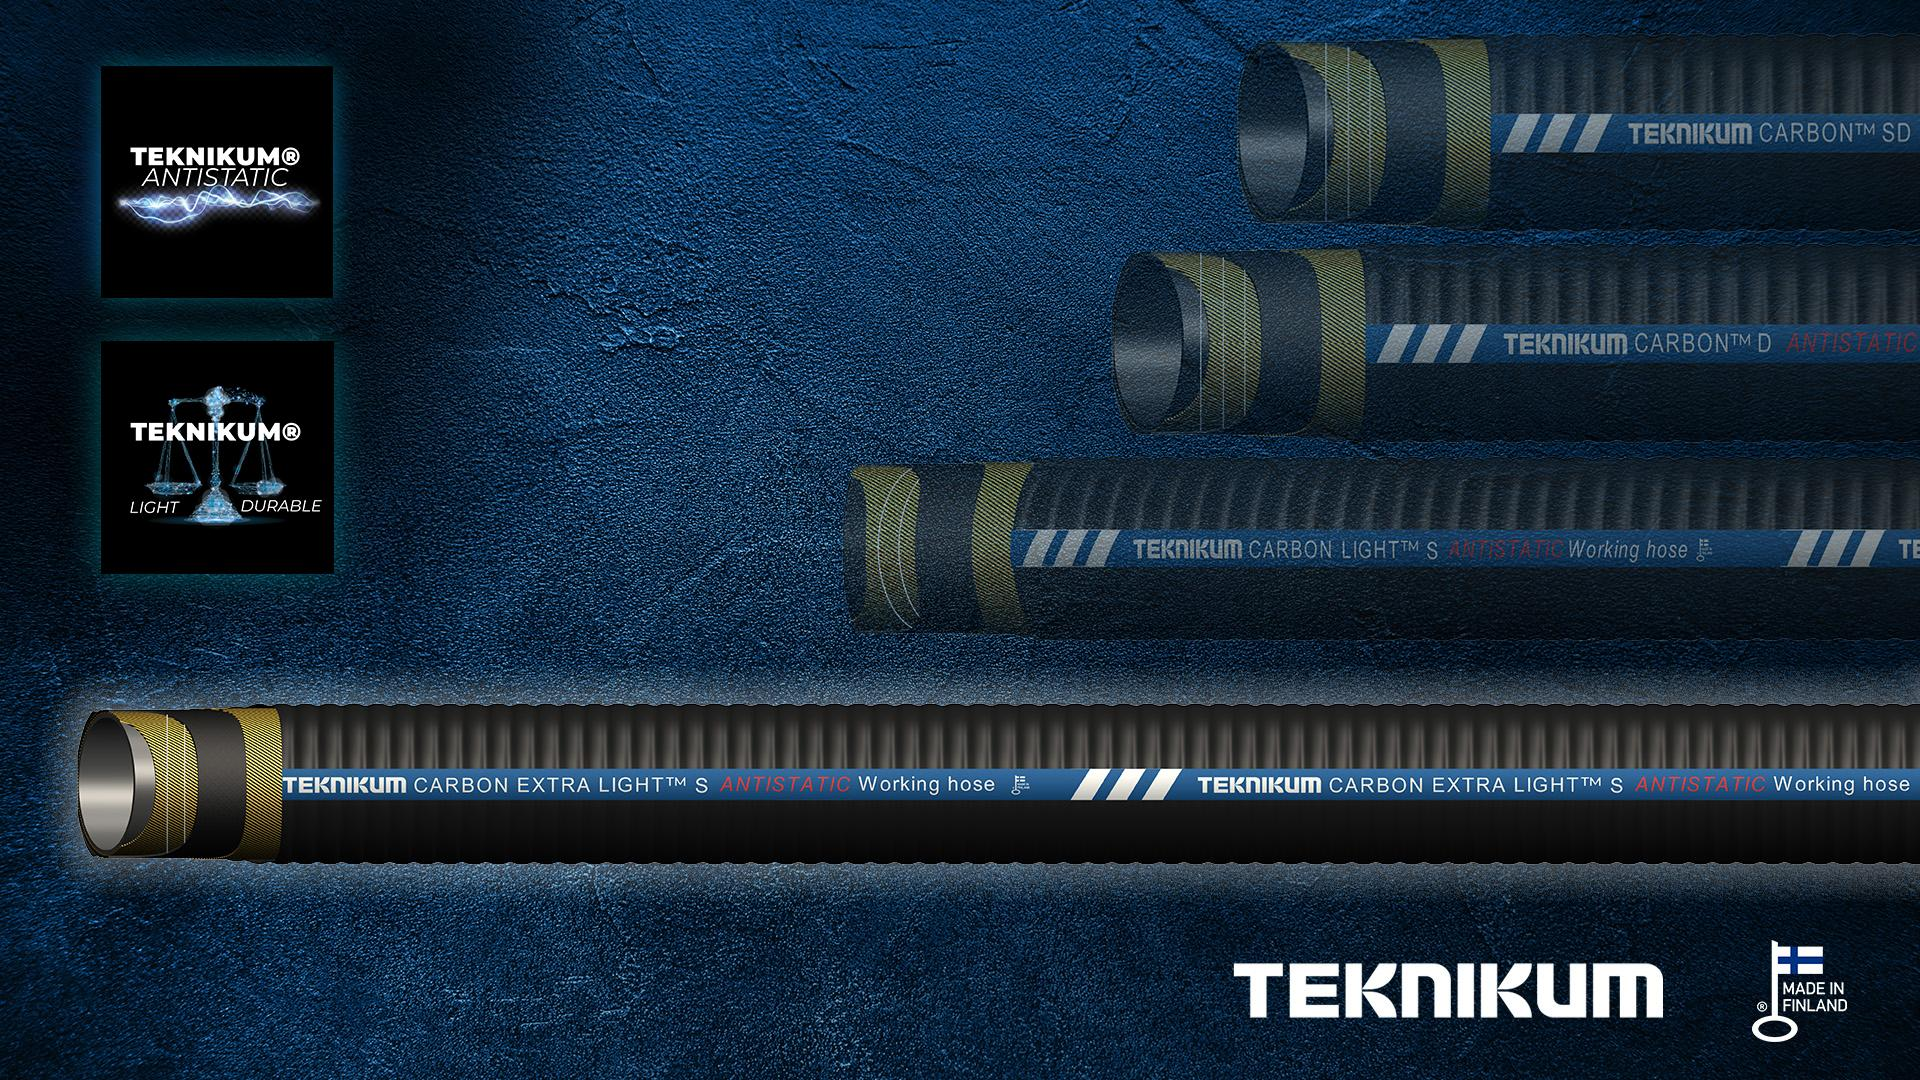 Teknikum CARBON EXTRA LIGHT S Antistatic featureFINAL